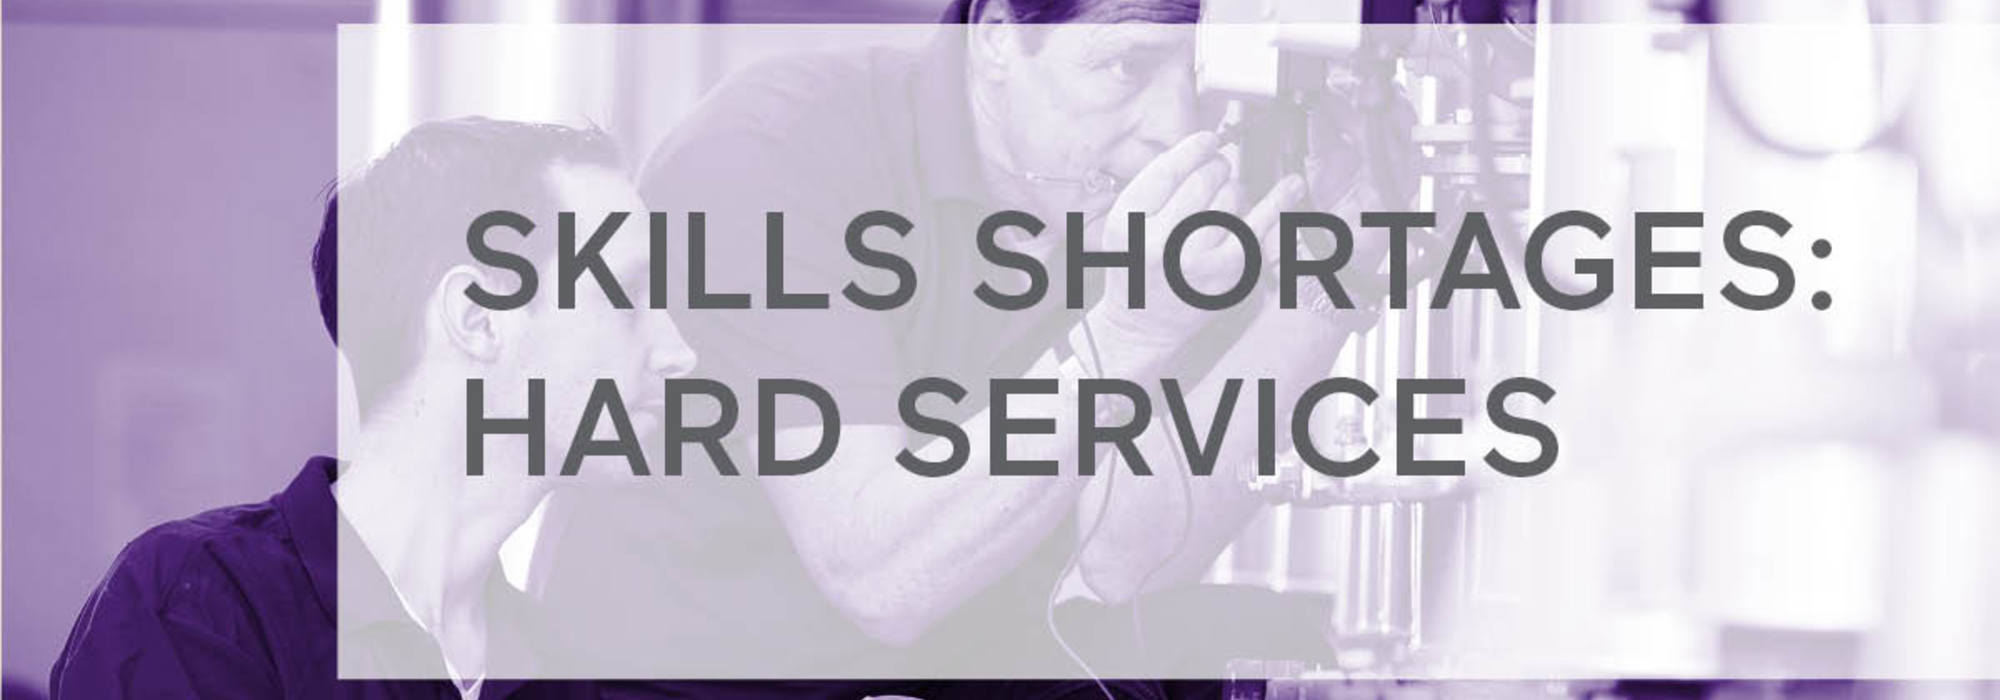 The Hard Services Skills Shortage. Why Are so Many Companies Struggling to Hire Engineers?